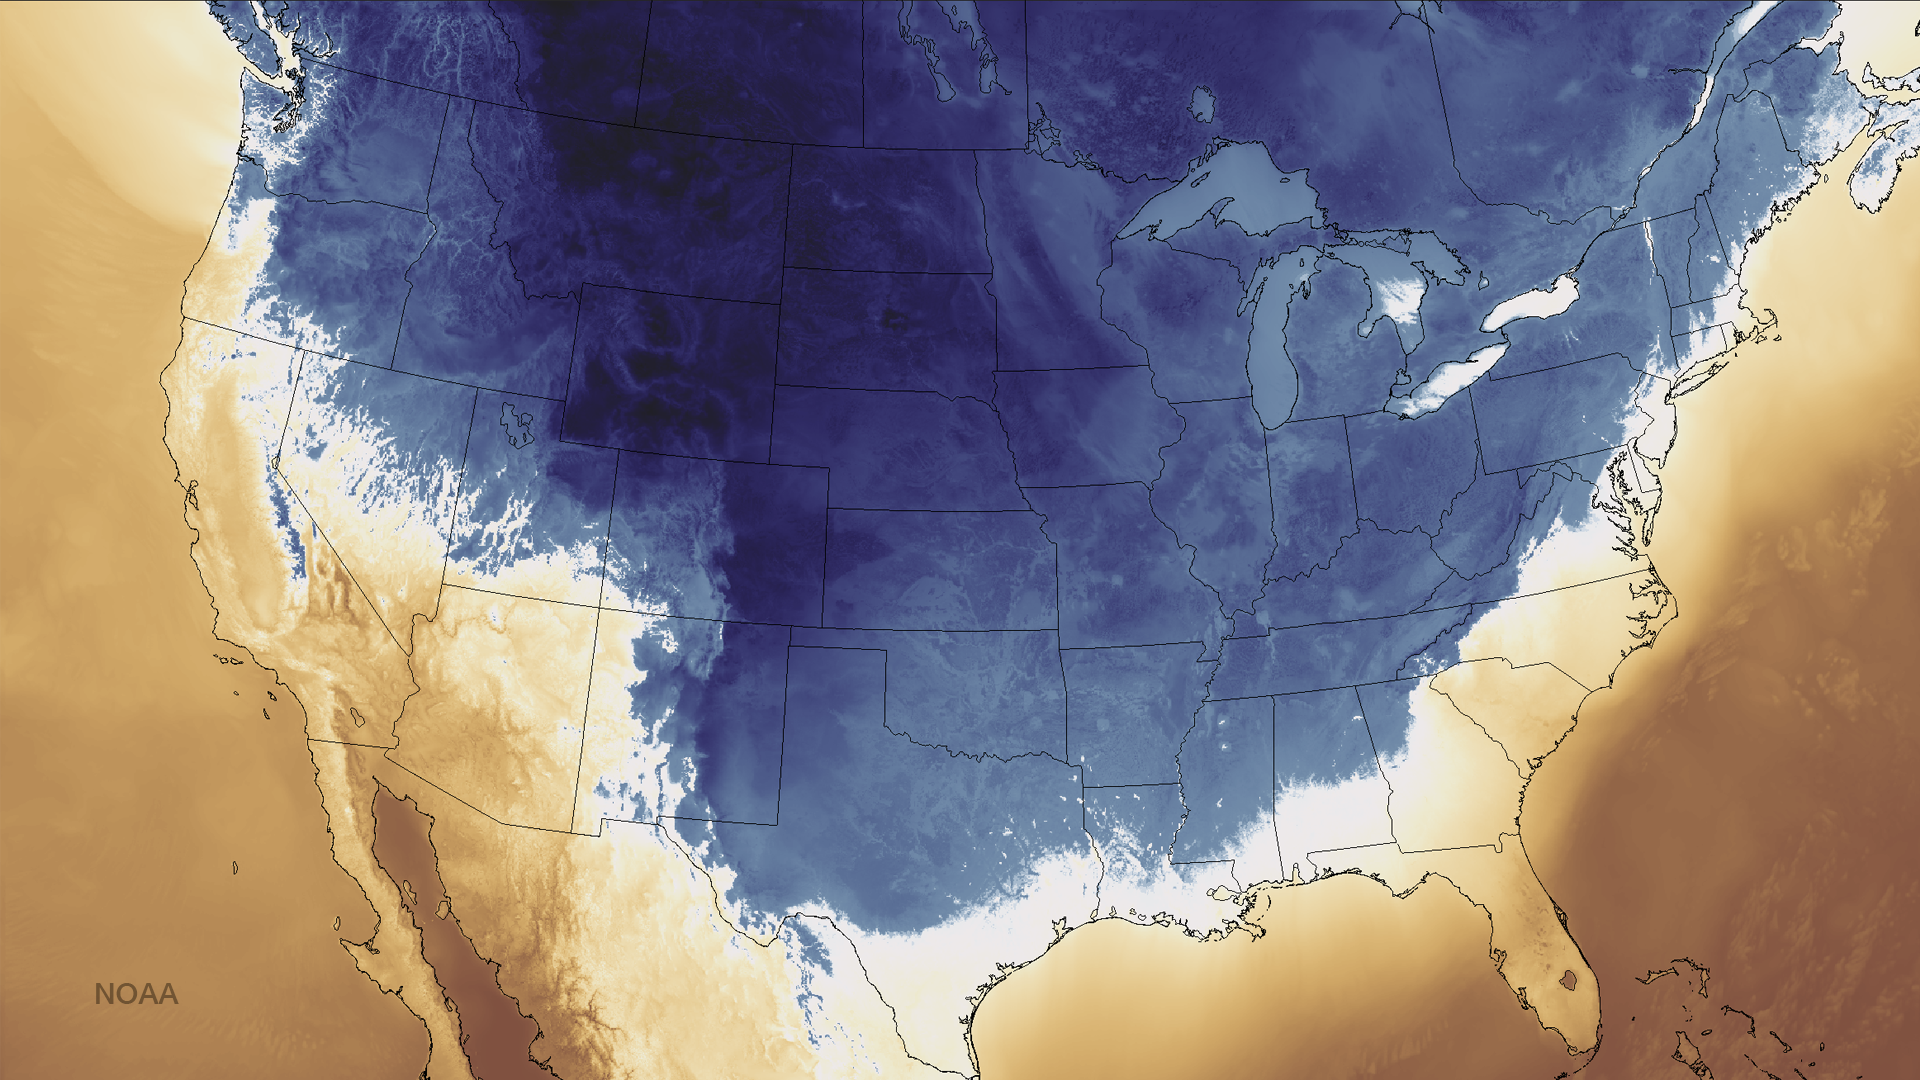 2014–15 North American winter - Wikipedia on ny climate map, frost depth map, ice accumulation map, ny drought map, ny elevation map, ny radar map, gore mountain ny trail map, nerfc snow map, snow loading map, mountain home idaho map, wind direction map, ny state snow, idaho snow map, maine snowpack map, ny wind speed map, new england snow total map, ny satellite map, ny weather map, michigan snow load map, michigan county map,